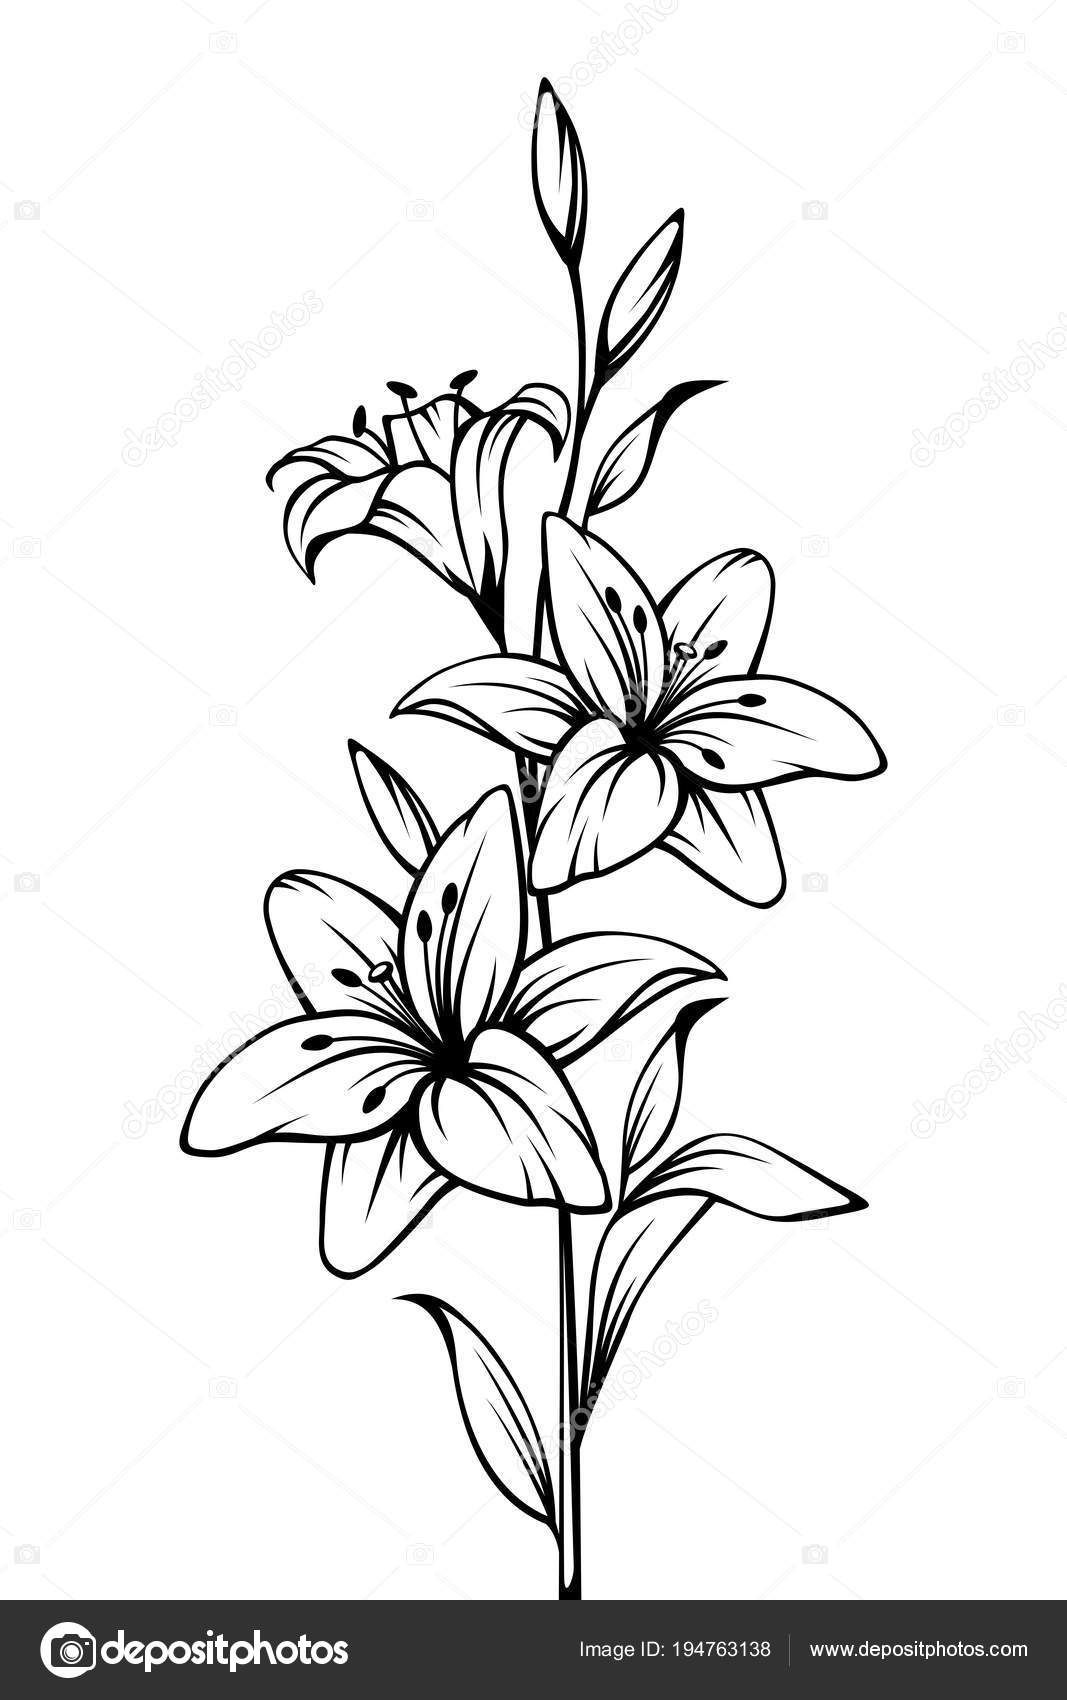 Vector Black White Contour Drawing Lily Pencil